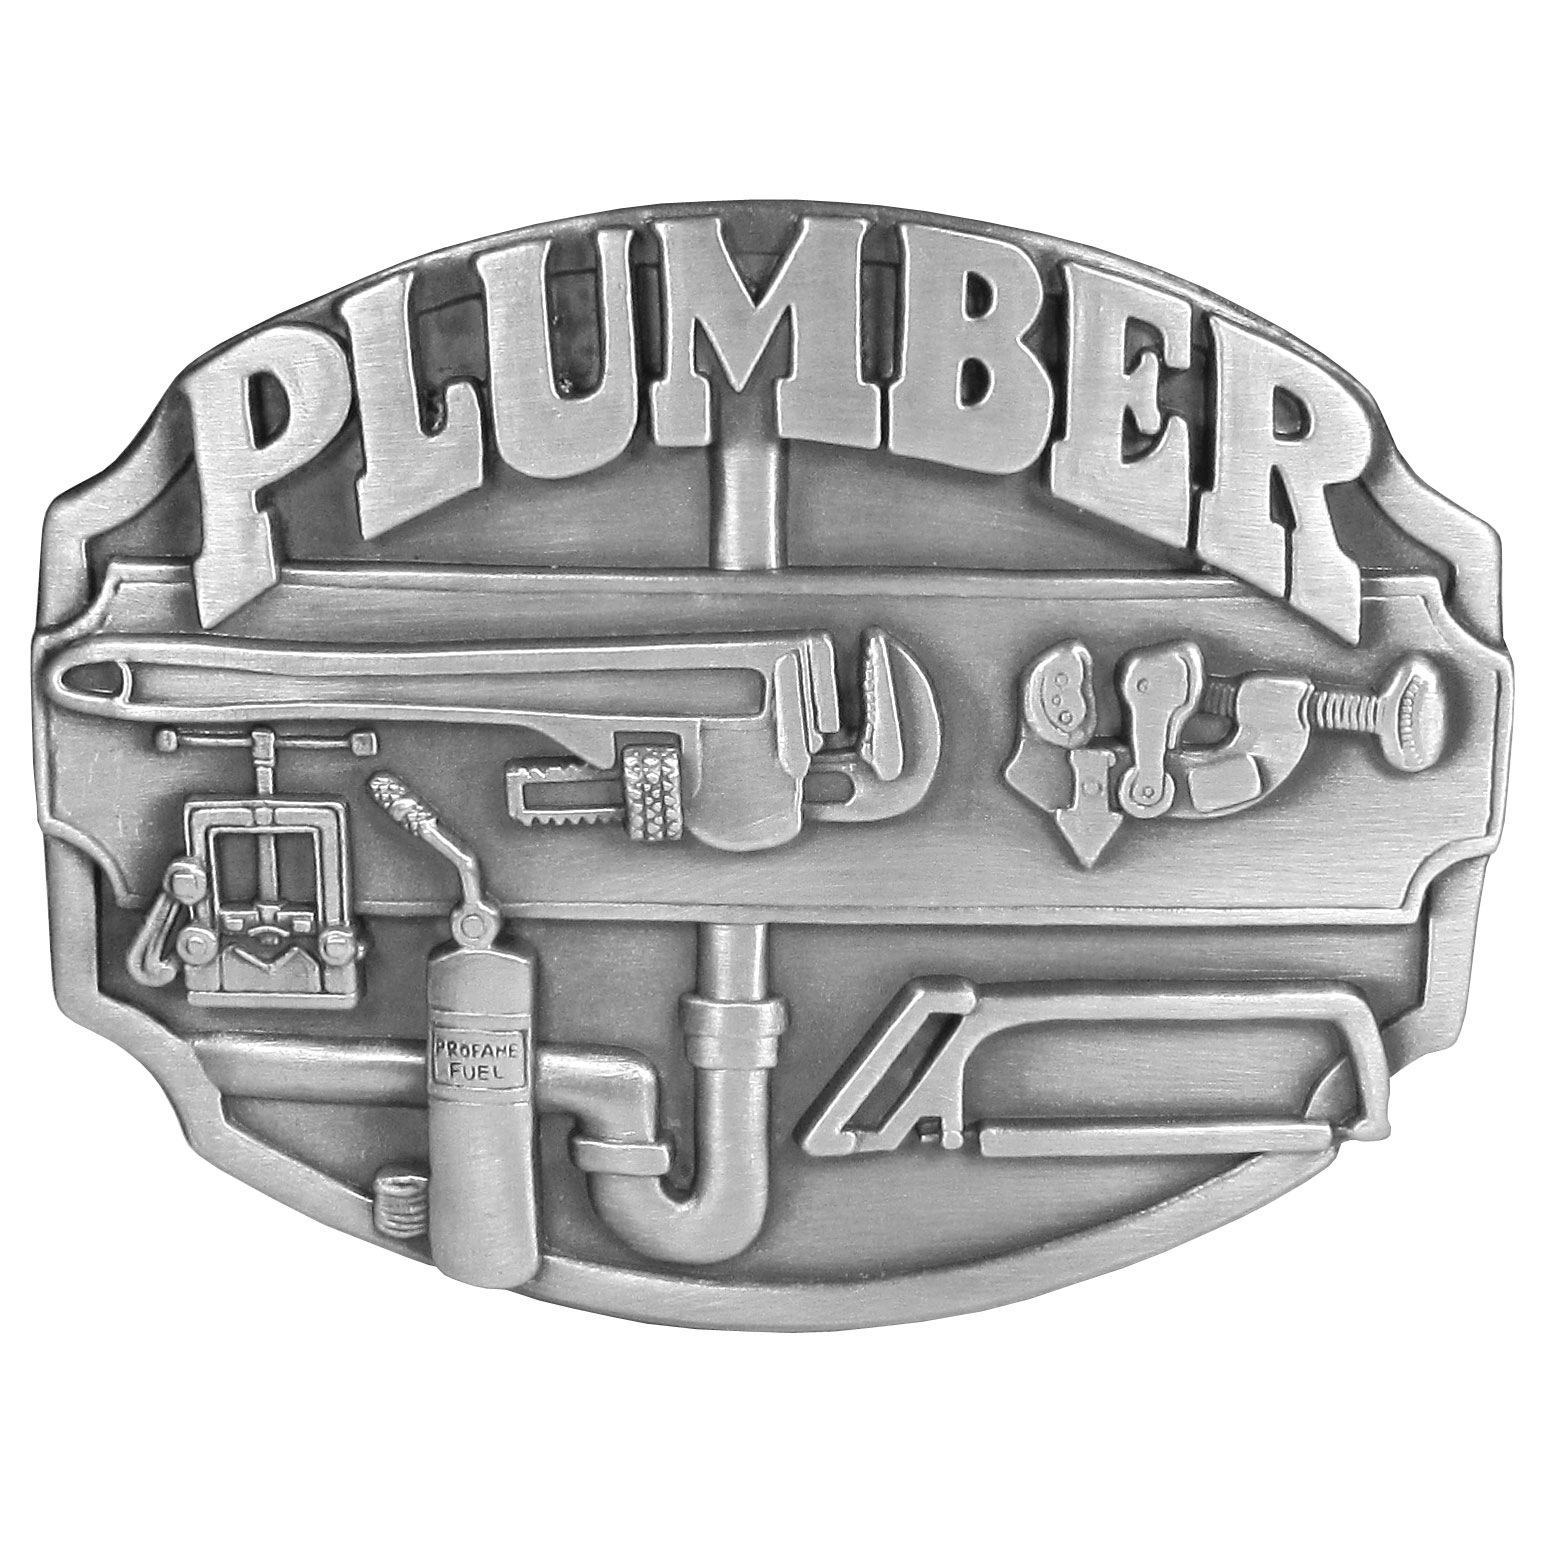 "Plumbers Antiqued Belt Buckle - This belt buckle celebrates the plumber! ""Plumber"" is written in bold across the top with tools of the trade below, including pipe, a pipe wrench,saw, pipe cutter and propane fuel. This exquisitely carved buckle is made of fully cast metal with a standard bale that fits up to 2"" belts."